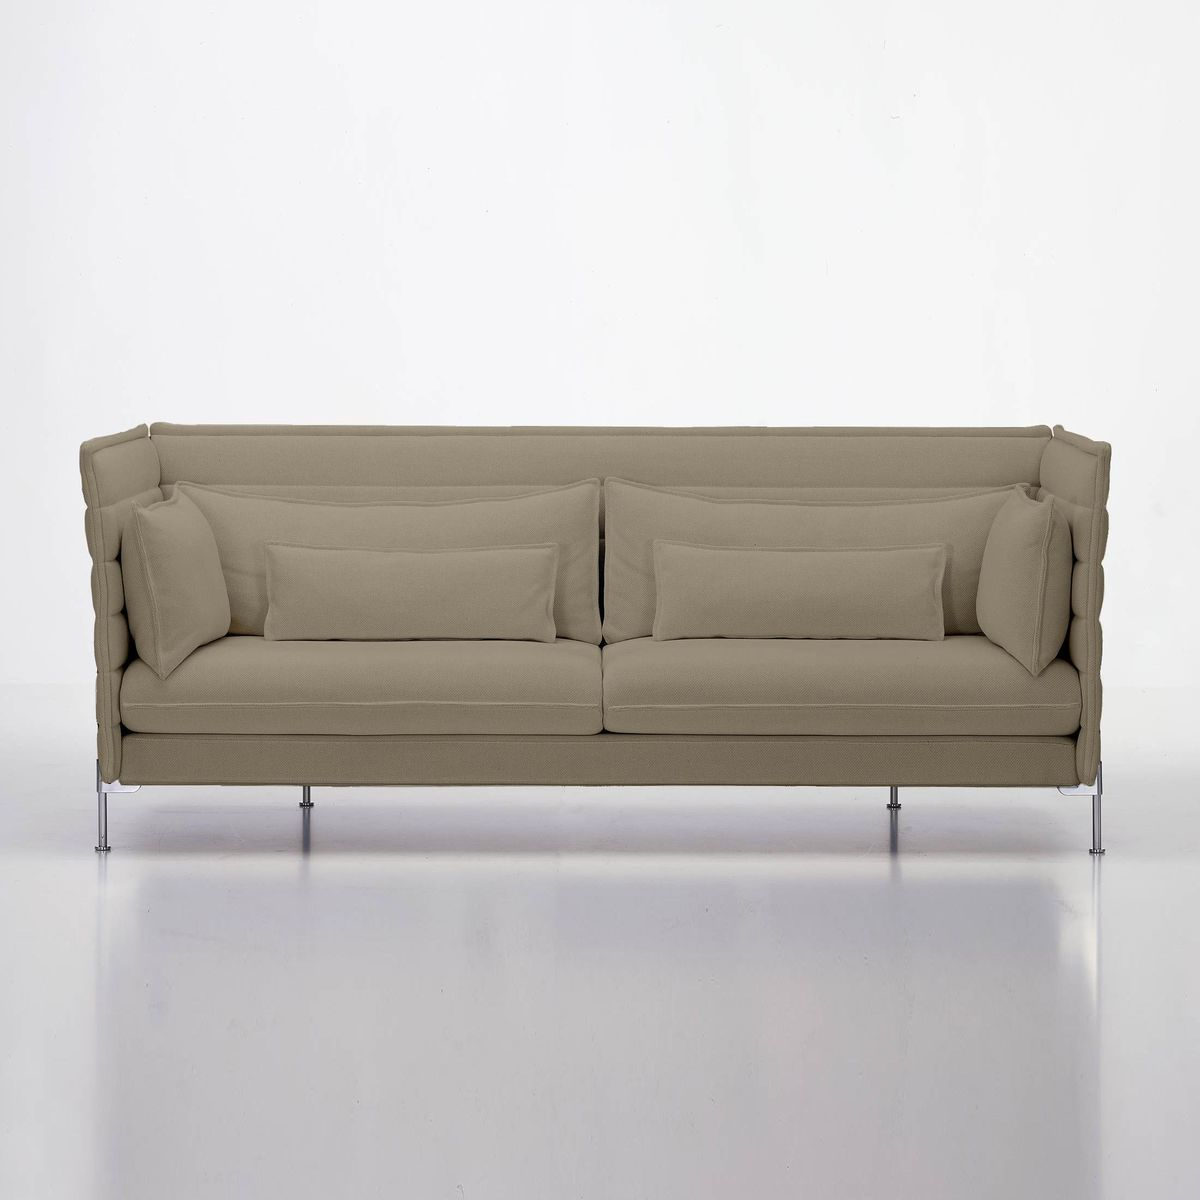 Vitra - Alcove Bouroullec 3-Seater Sofa - Warm Grey/frame Chrome/fabric